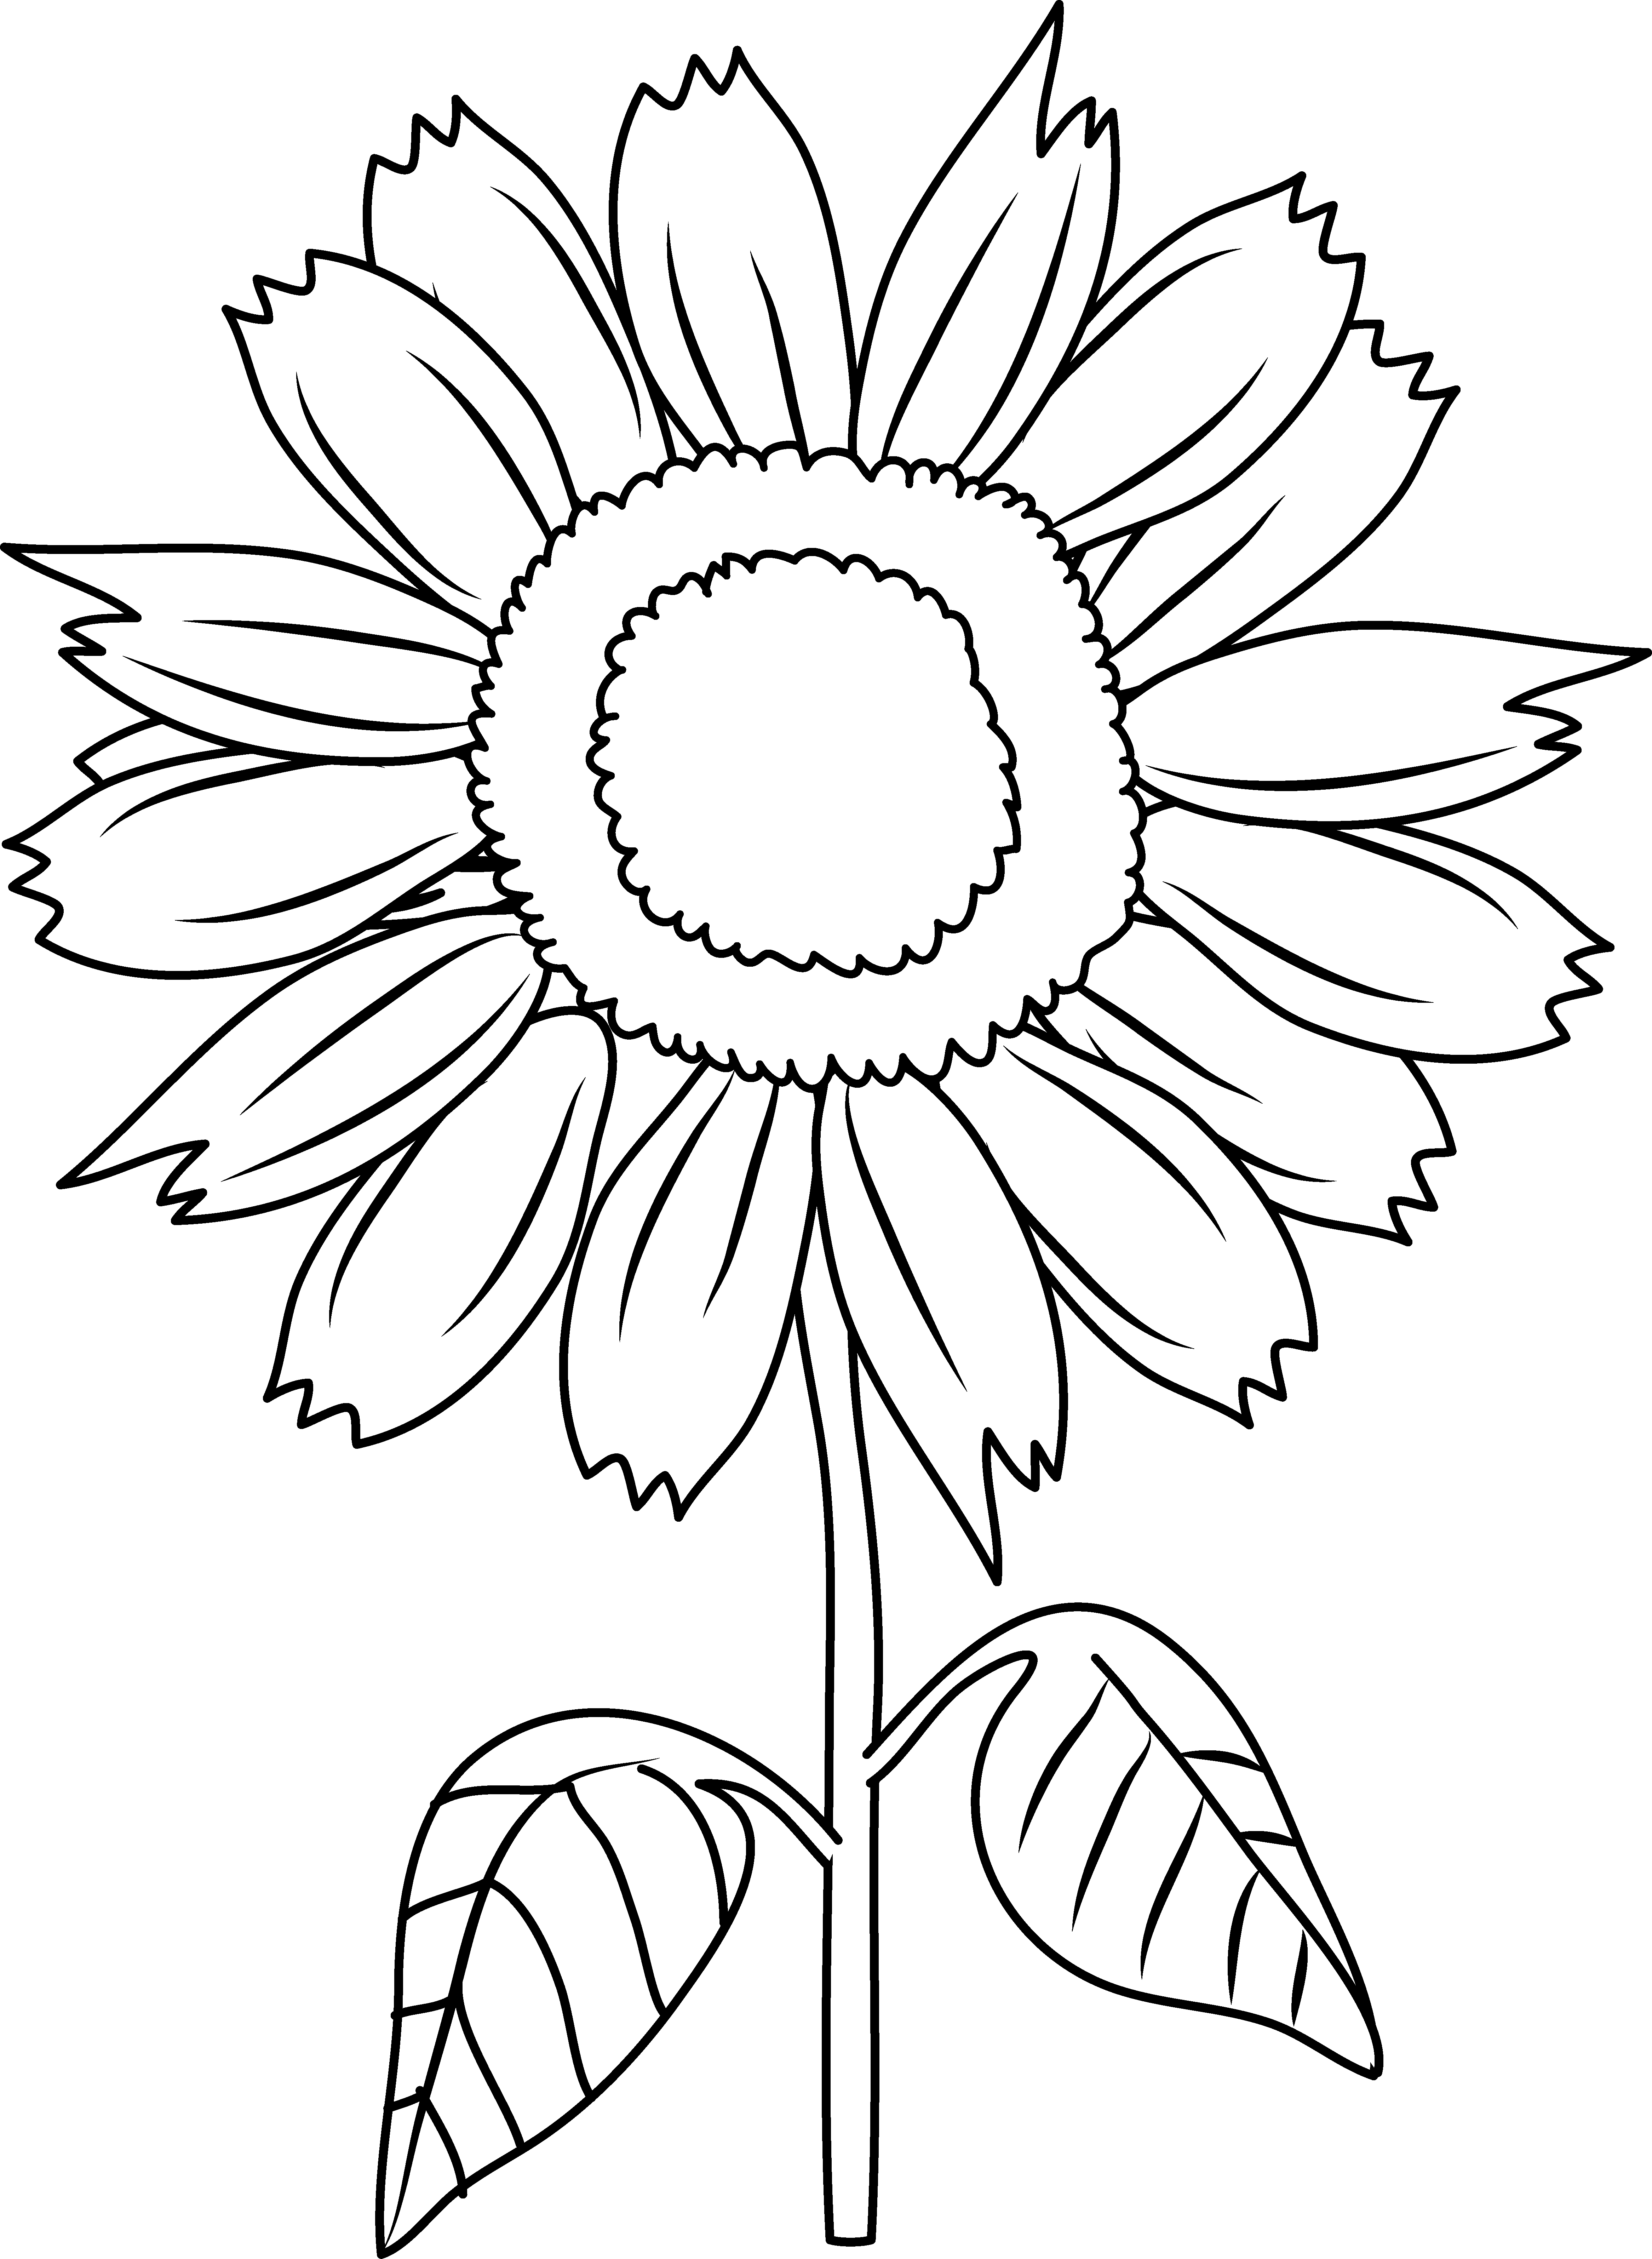 sunflower color sheet 15 beautiful sunflower coloring pages for your little girl sunflower color sheet